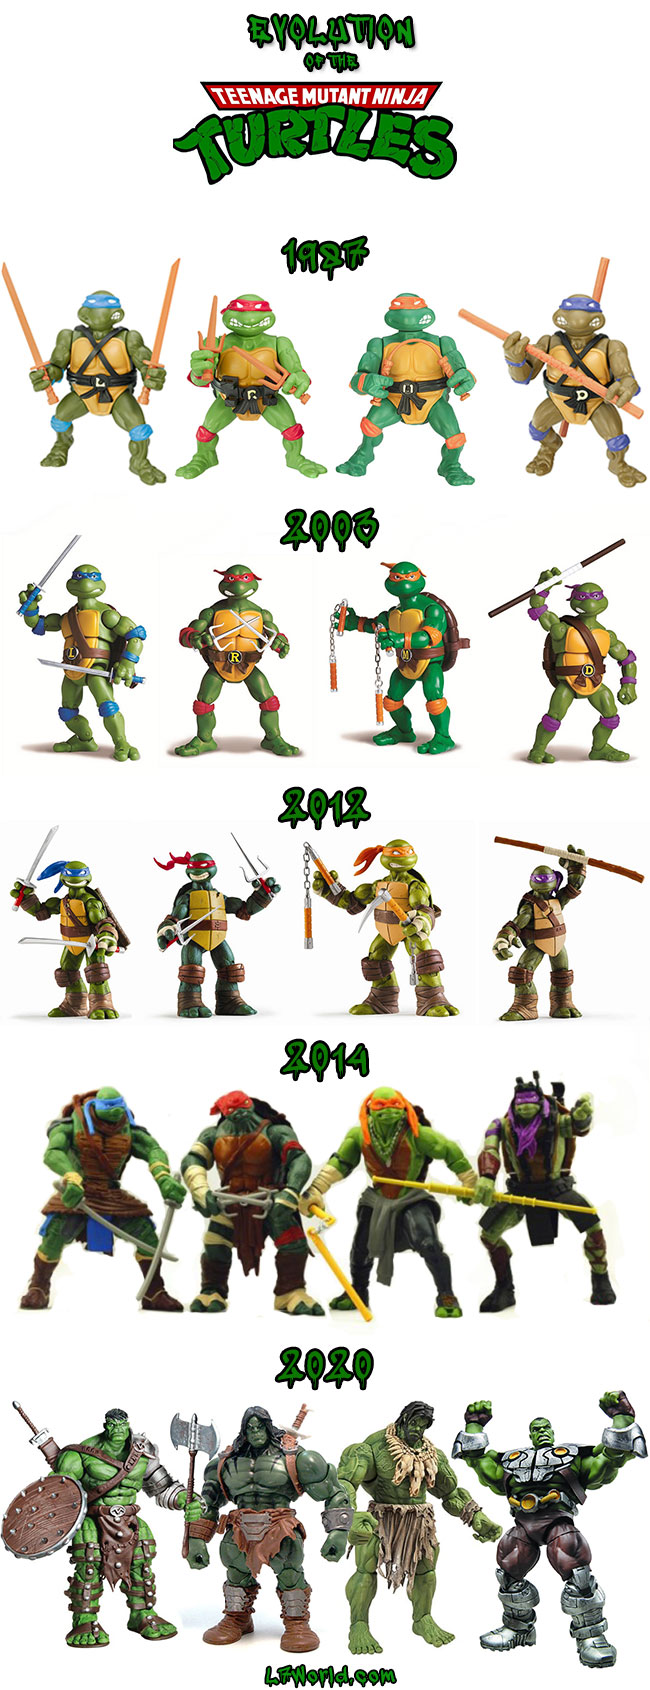 Teenage Mutant Ninja Turtles 2003 Toys : Teenage mutant ninja turtles quotes quotesgram